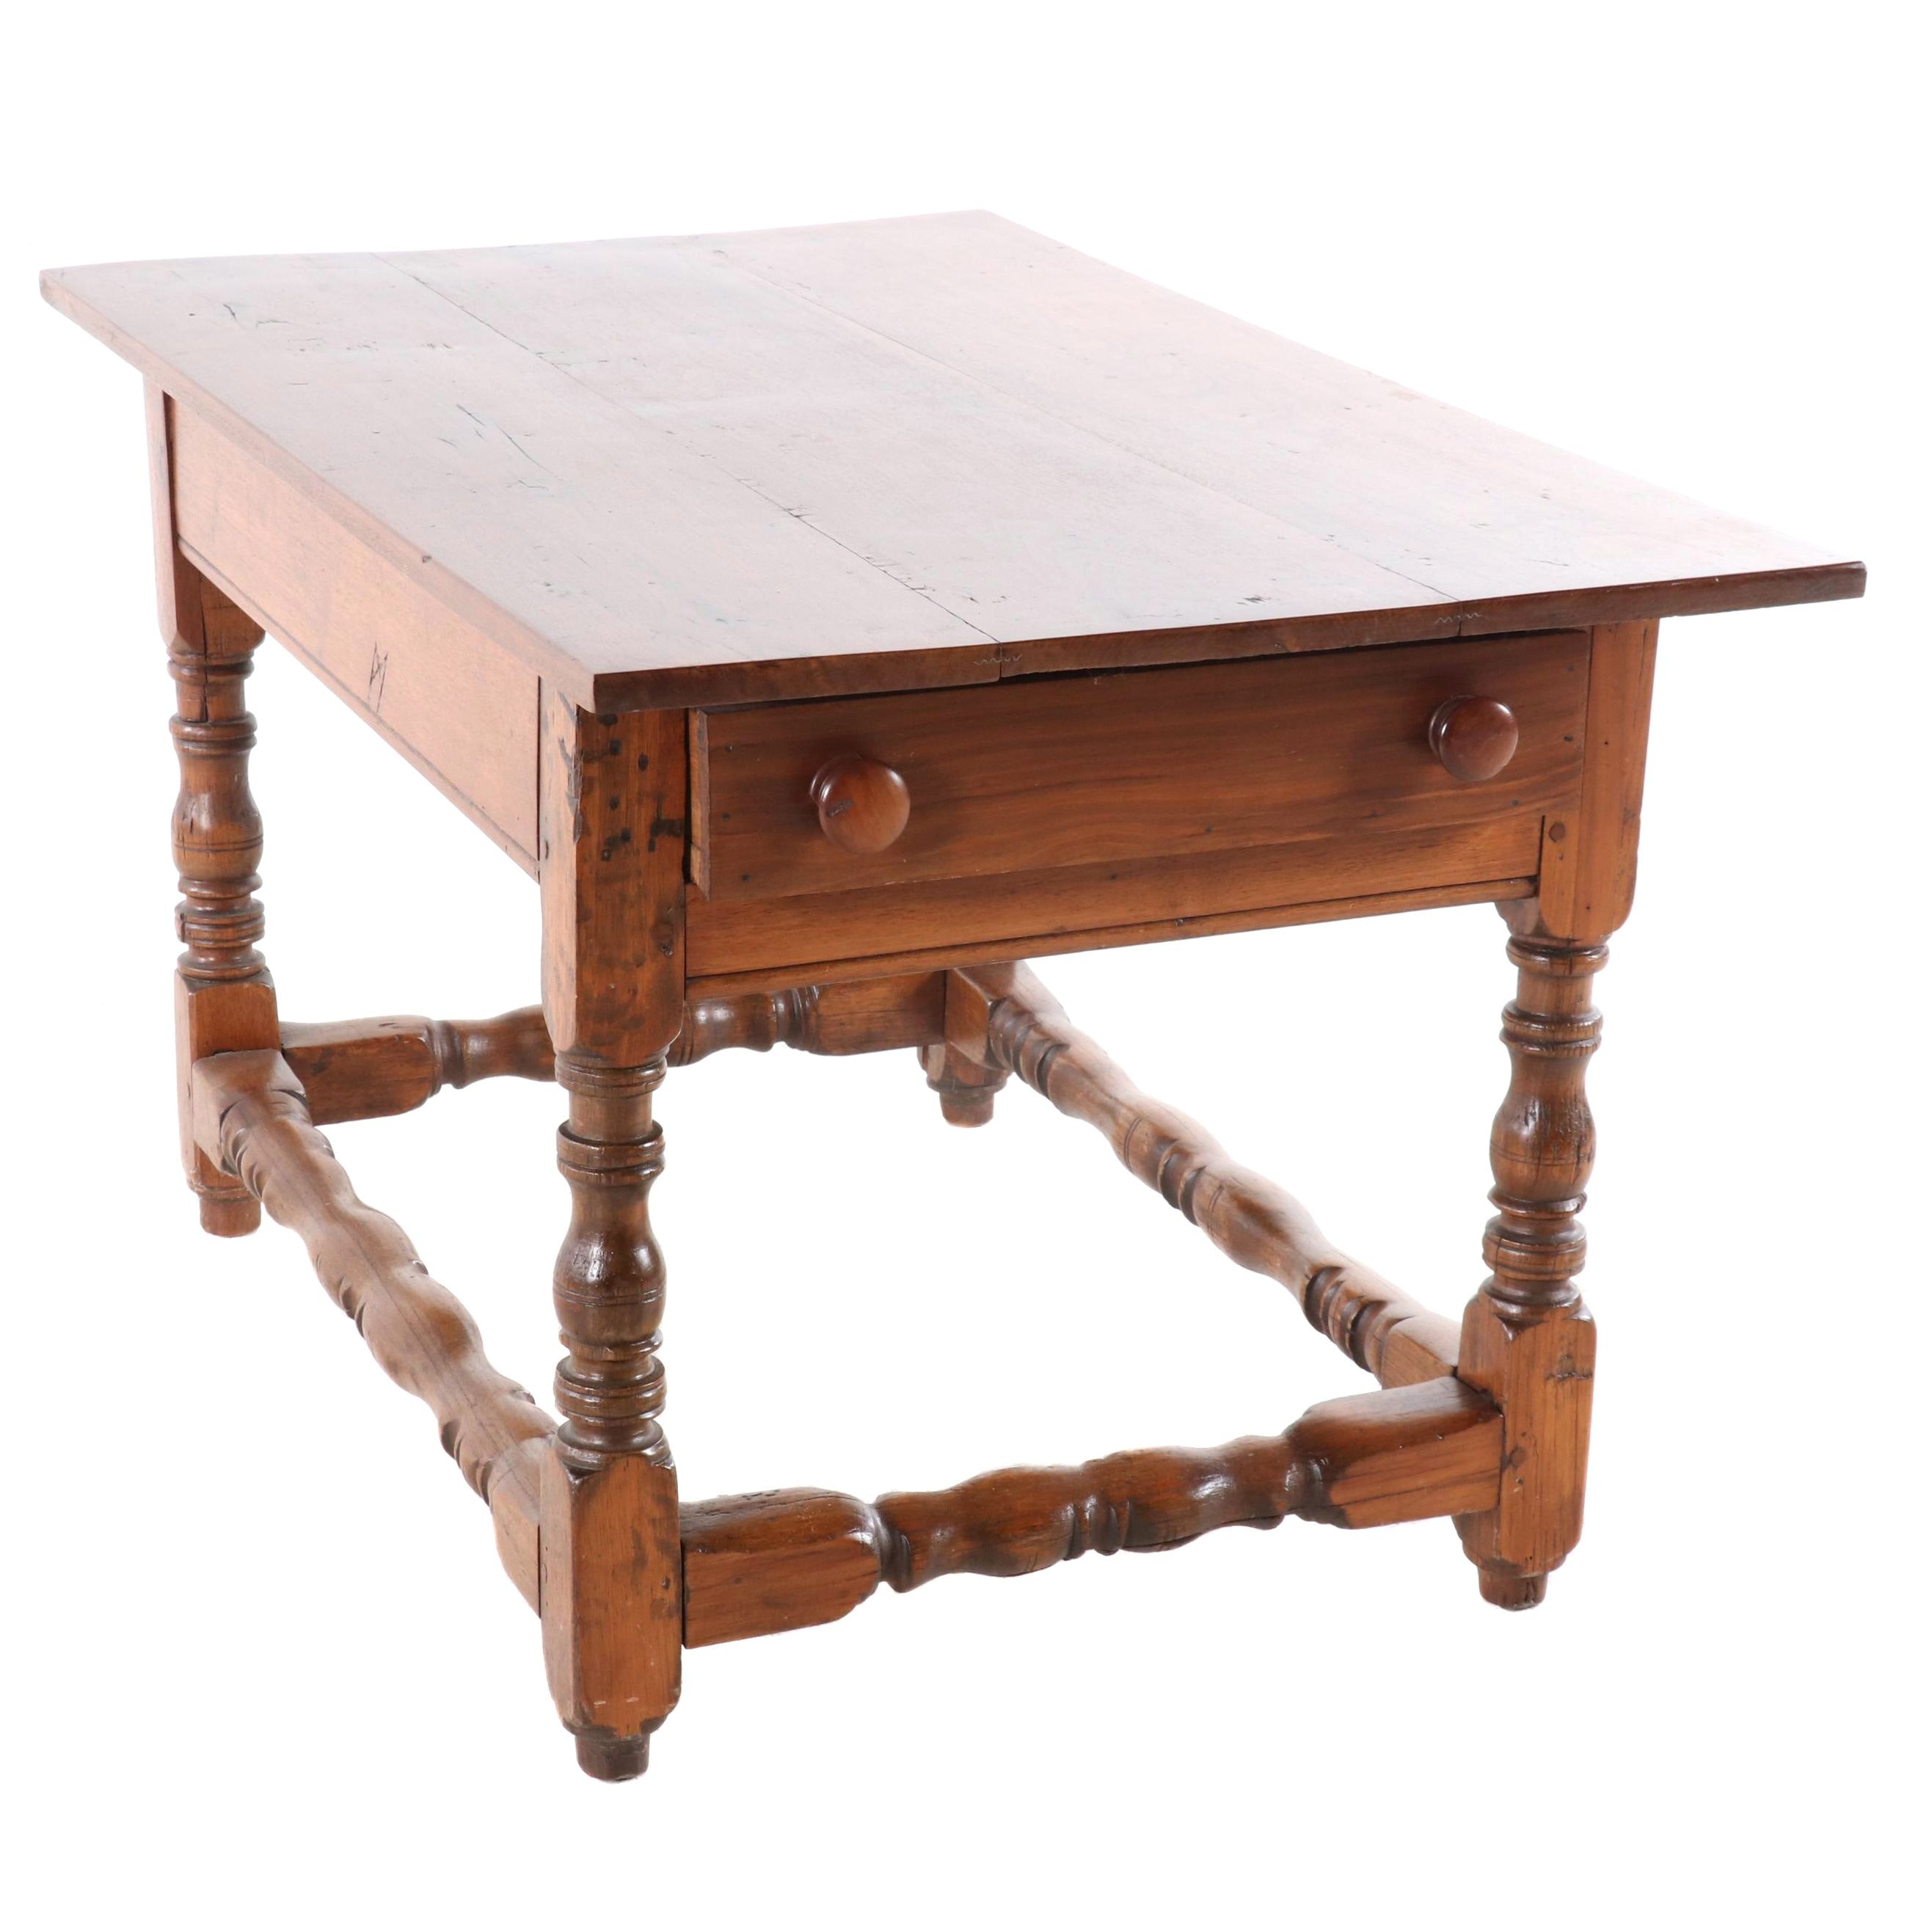 William and Mary Style Walnut Tavern Table, Mid 19th Century